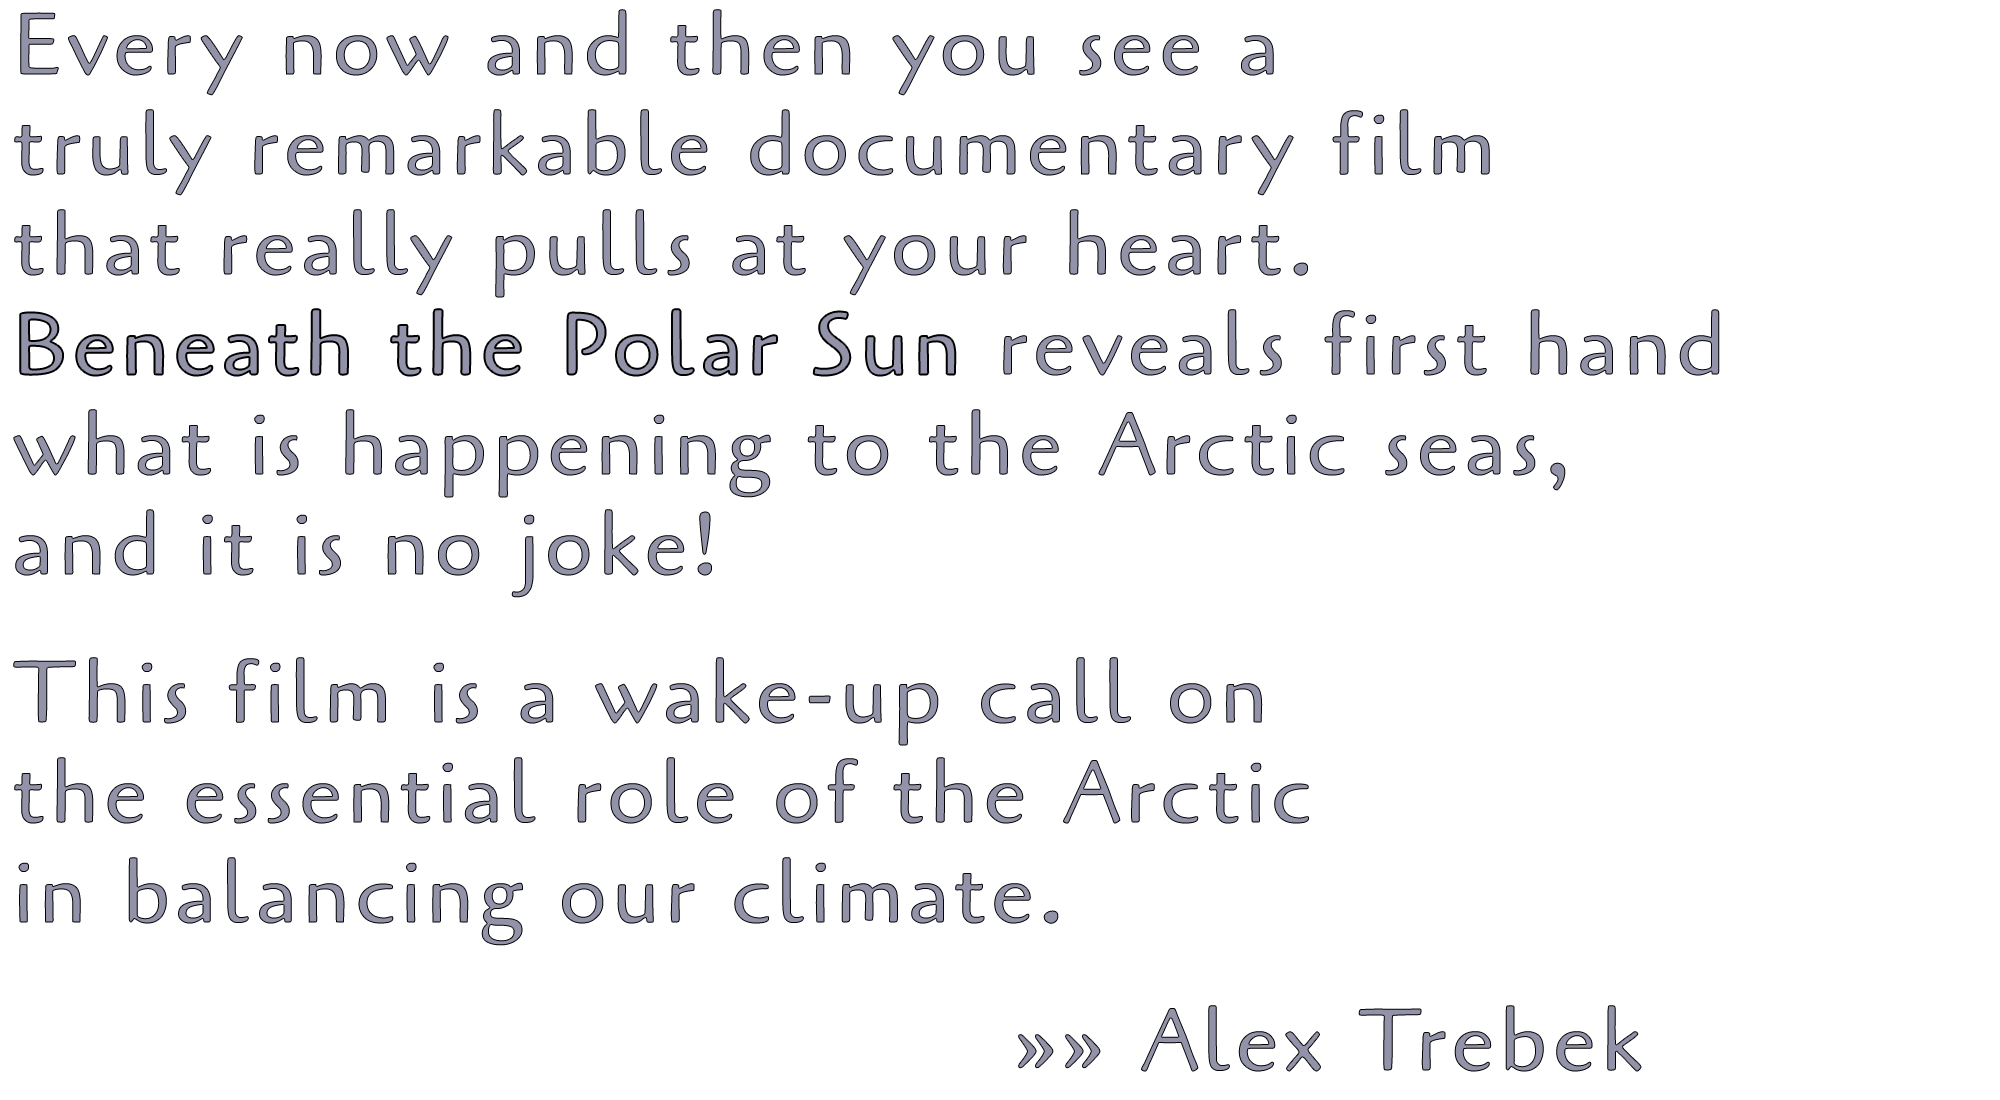 Every now and then you see a truly remarkable documentary film that really pulls at your heart. Beneath the Polar Sun reveals first hand what is happening to the Arctic seas, and it is no joke! This film is a wake-up call on the essential role of the Arctic in balancing our climate. »» Alex Trebek